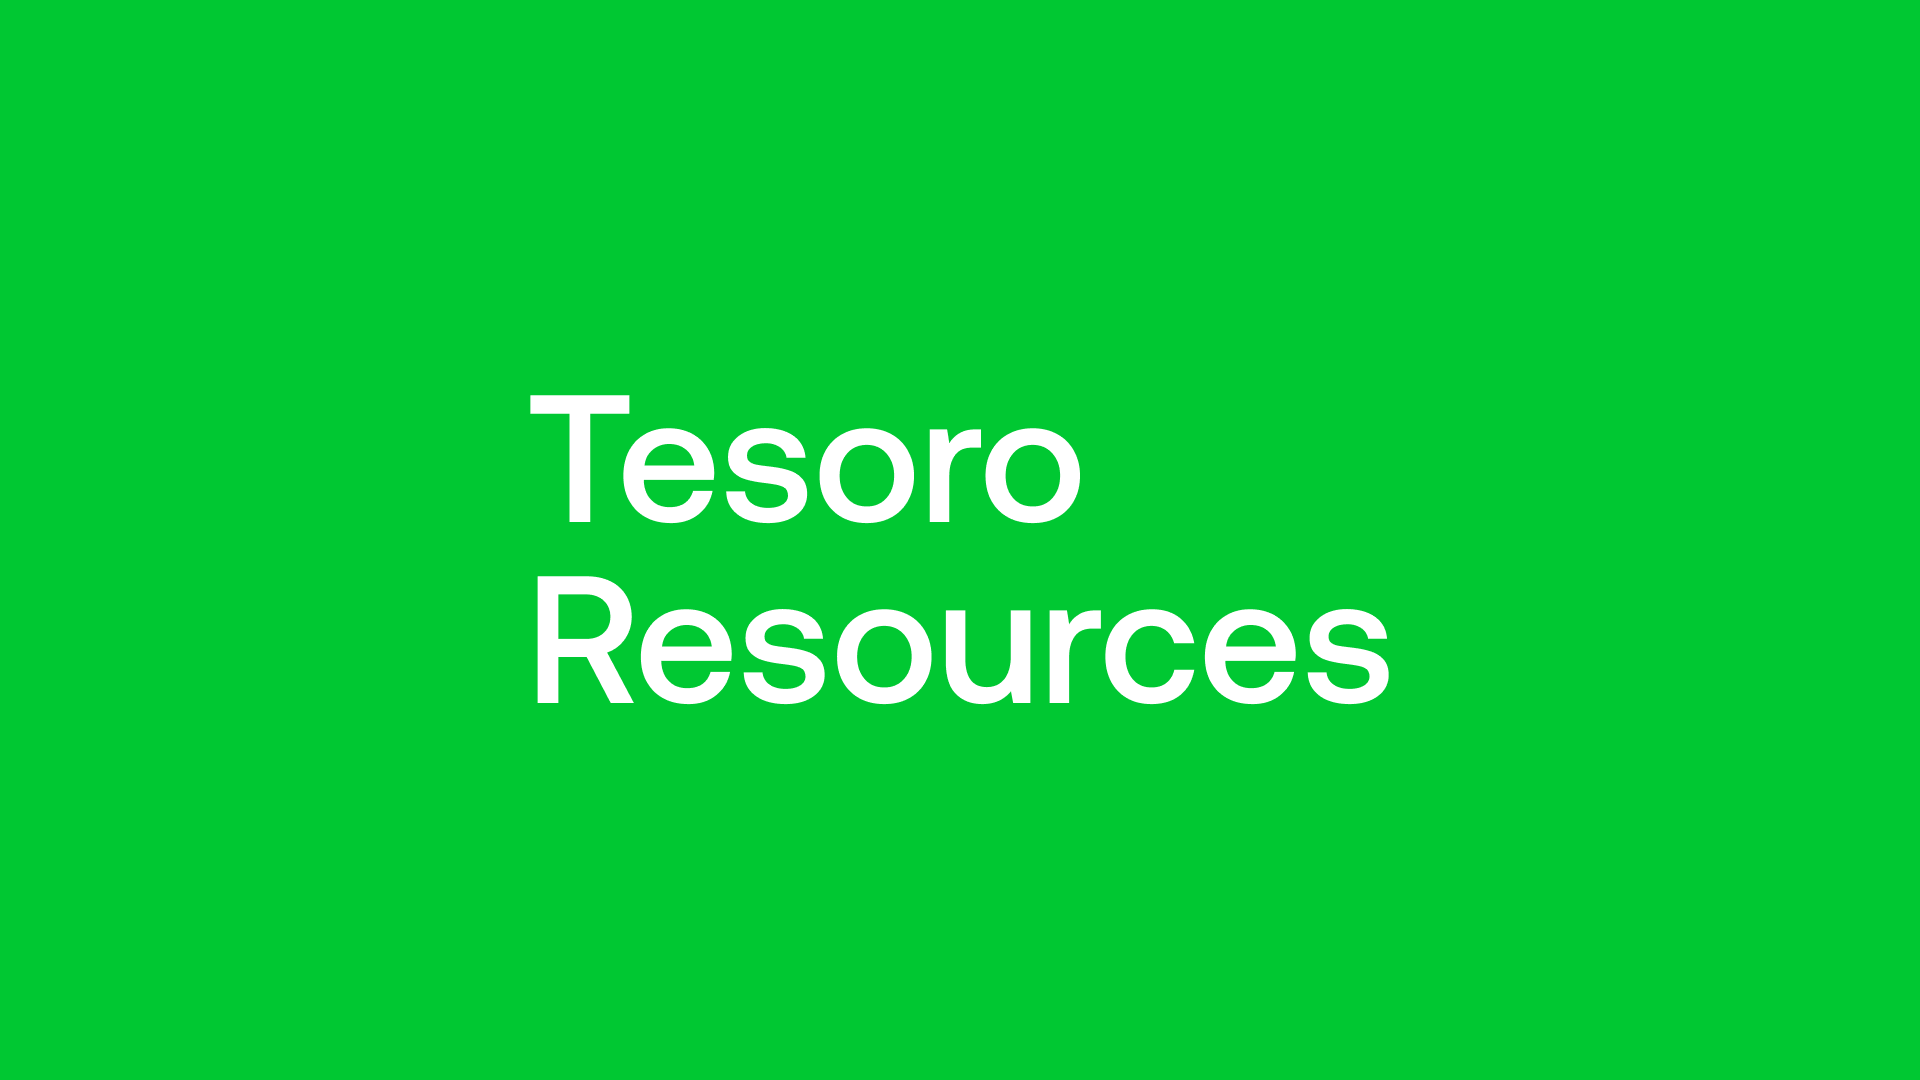 Tesoro Resources (TSO) - Resource Update By Year End